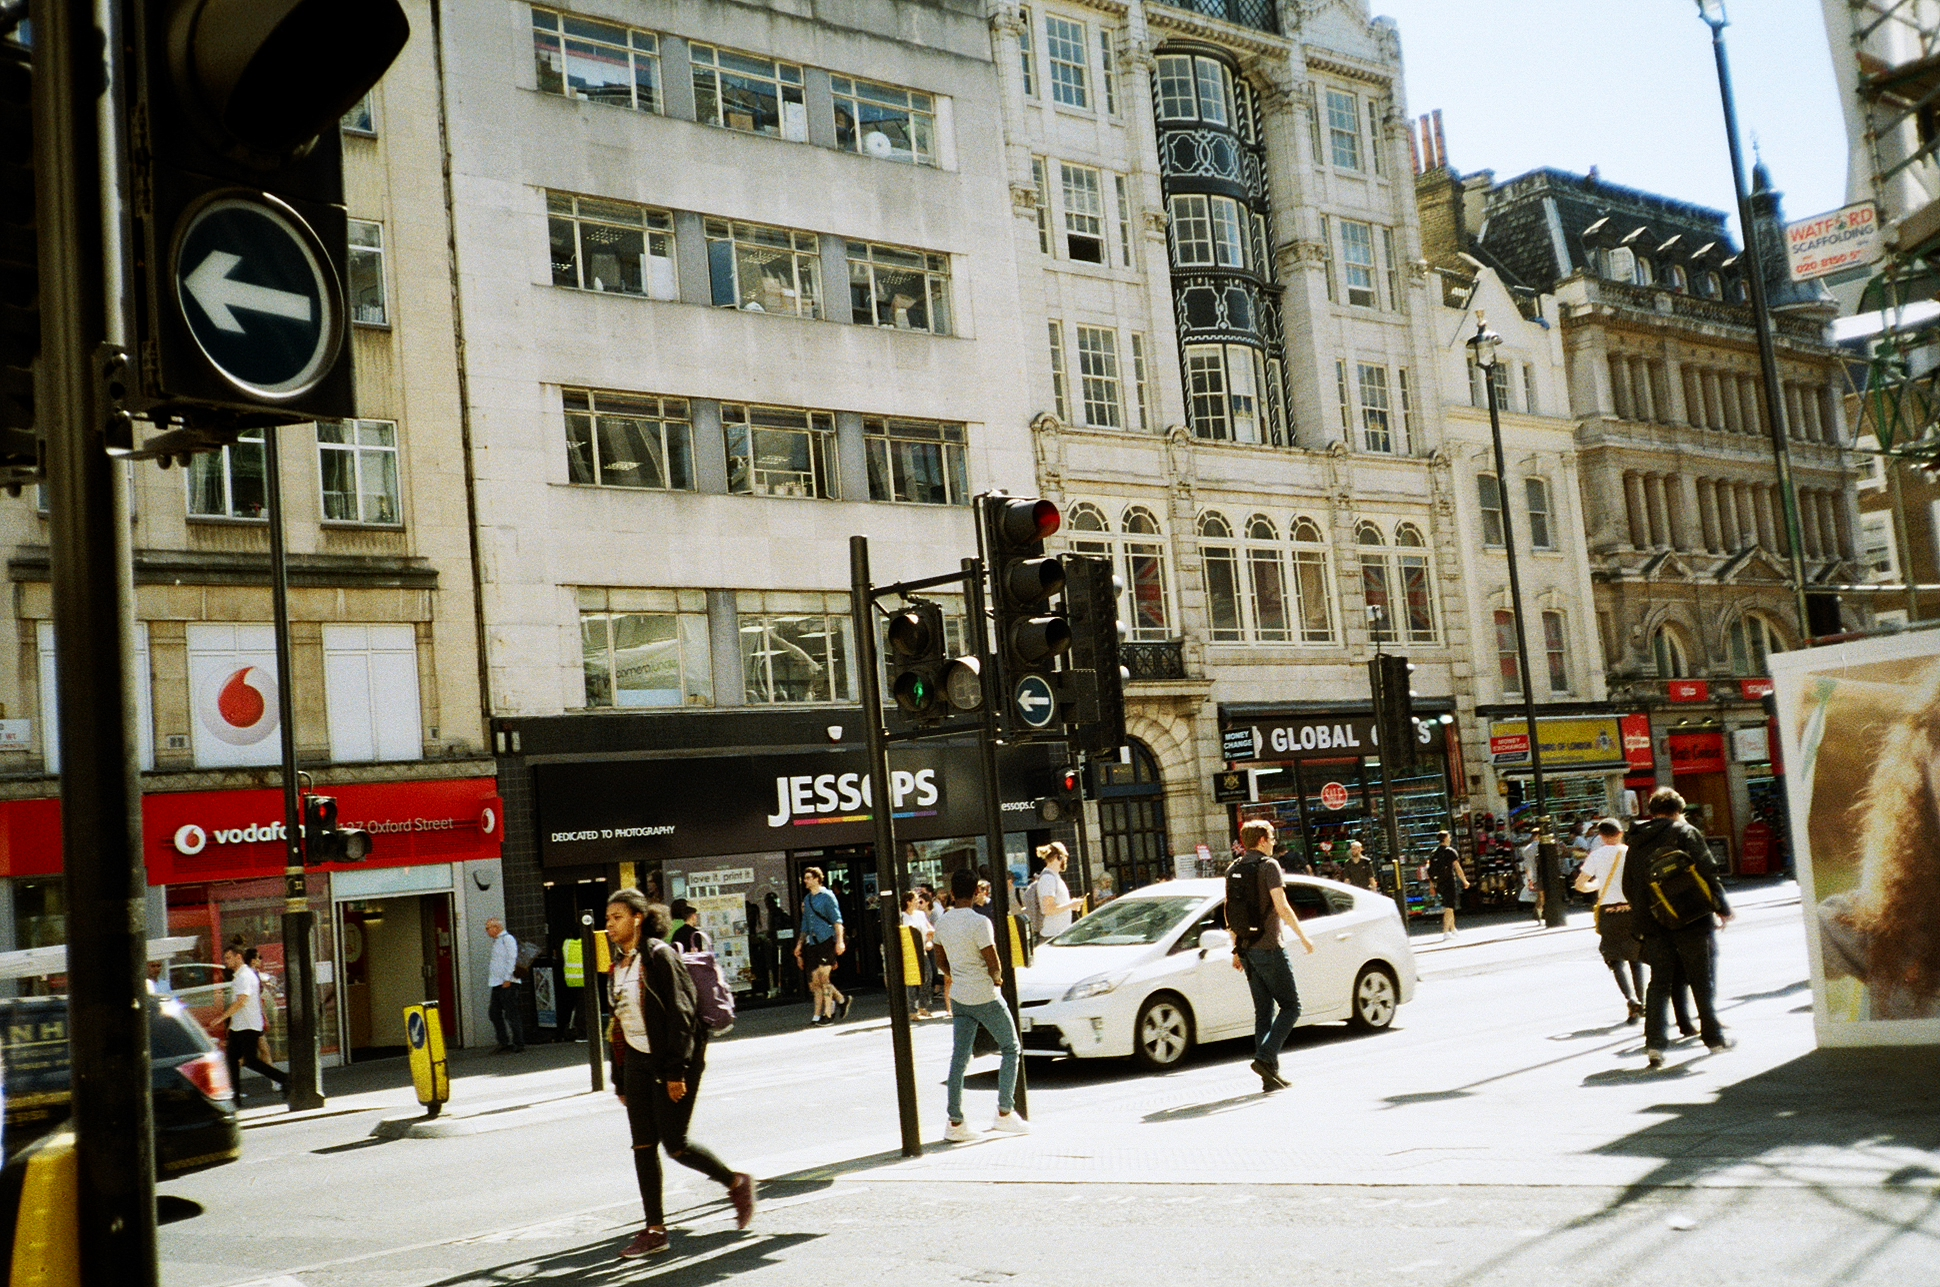 oxford street 35mm film diary by Ailera Stone